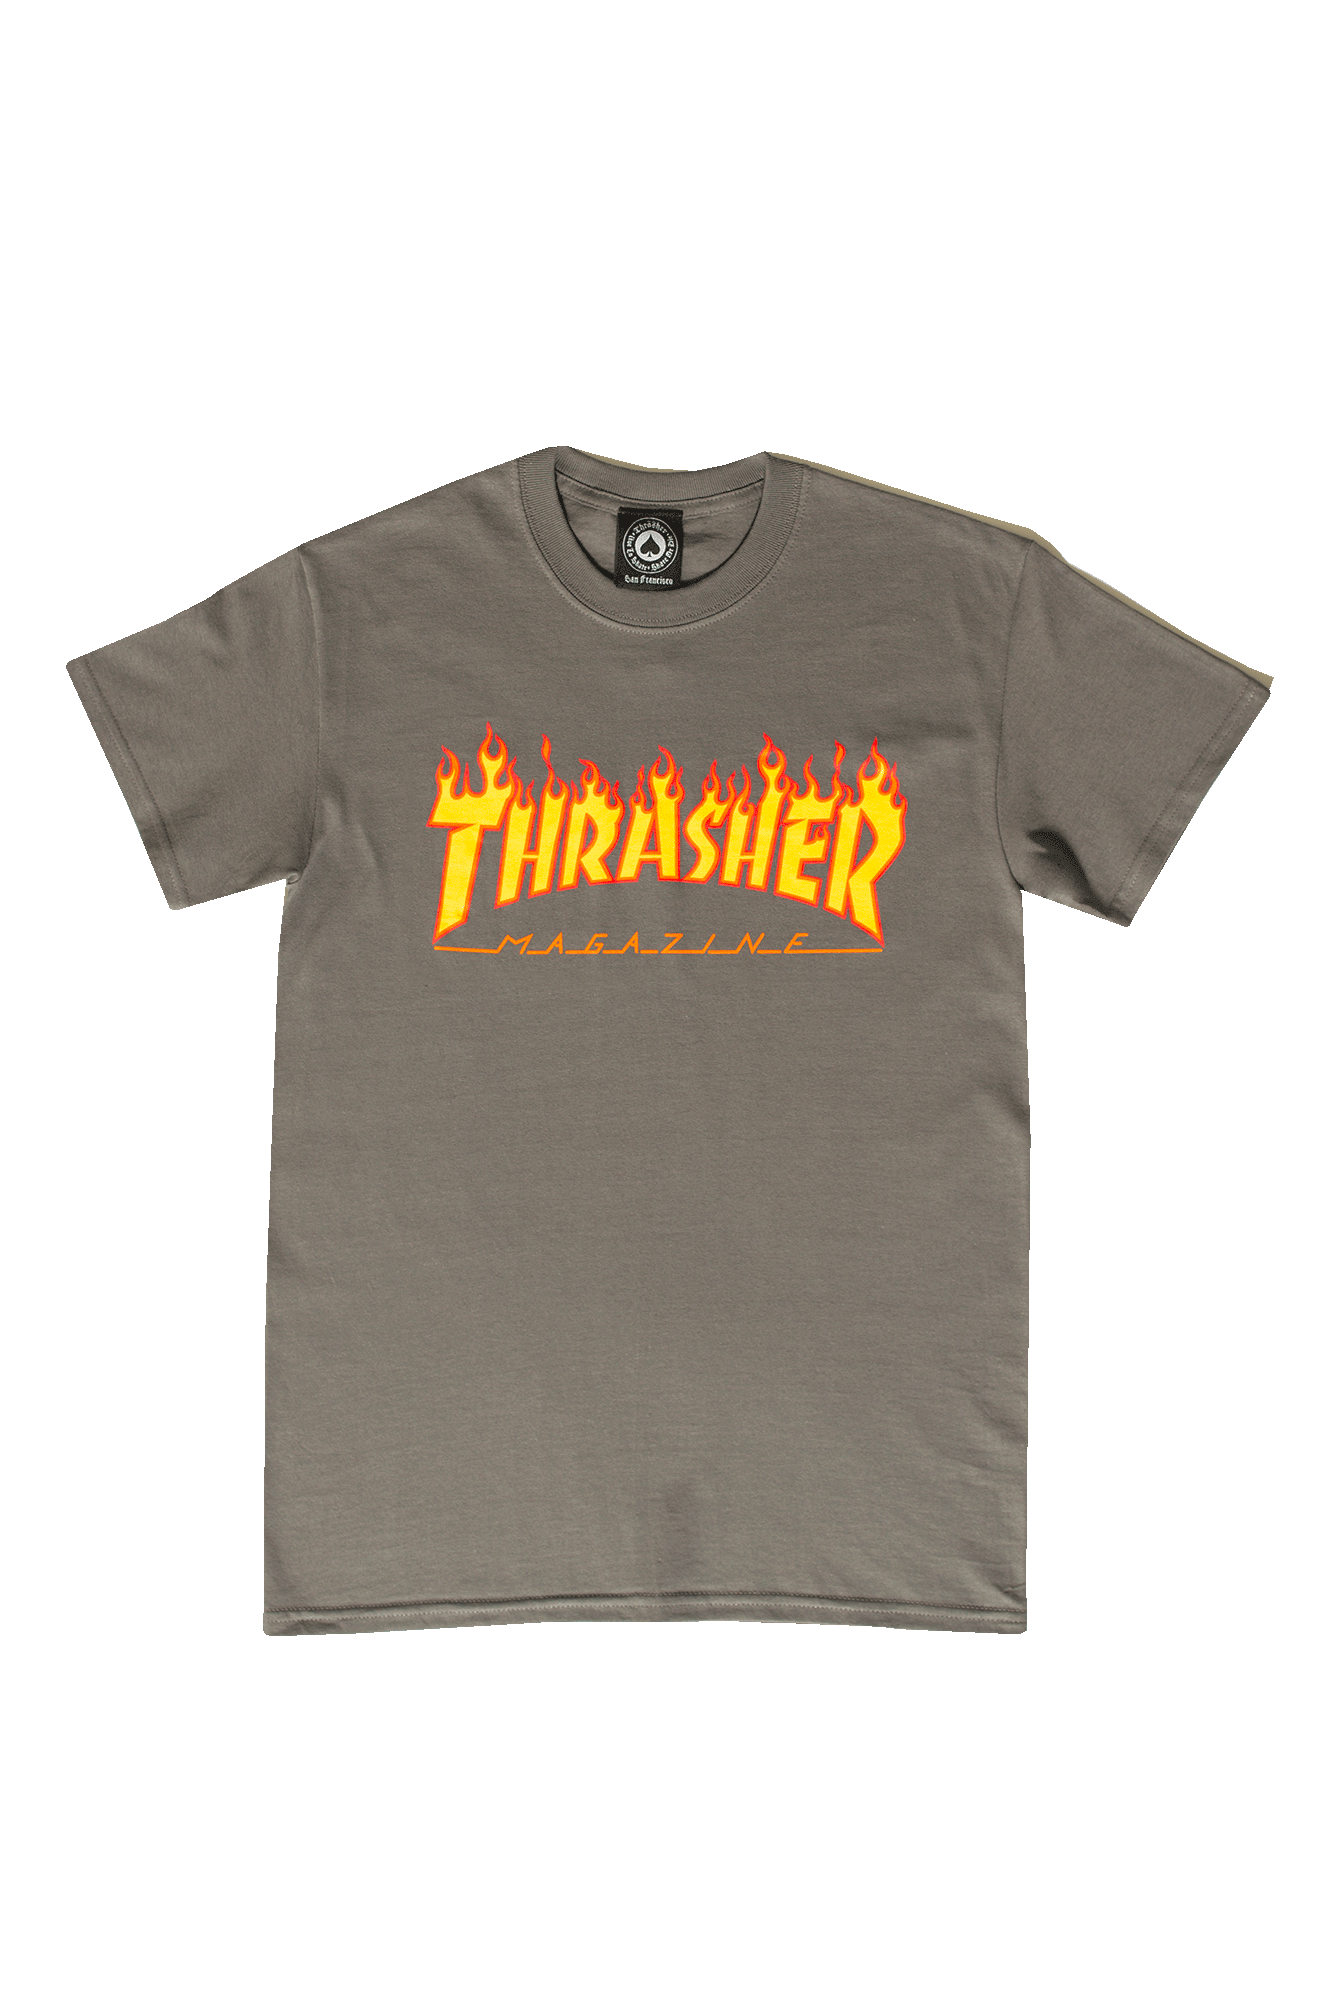 Thrasher T-Shirts Flame Logo T-Shirt Grigio 311019#CHARCOAL#C0009#S - One Block Down